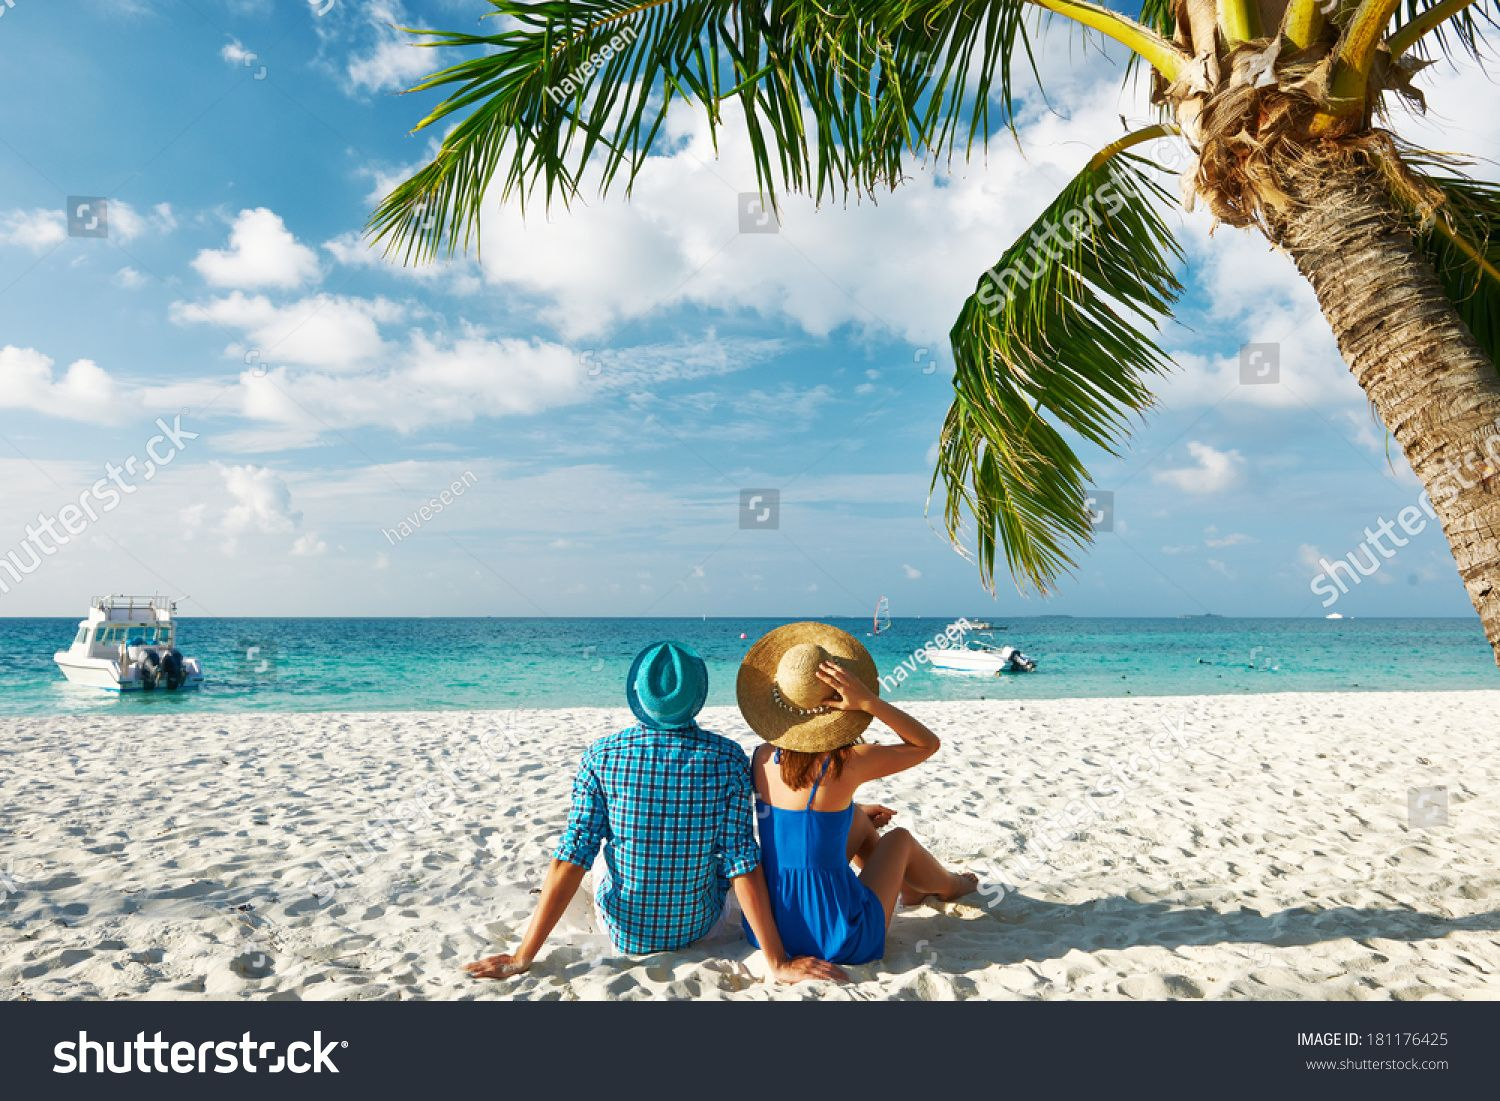 Couple in blue clothes on a tropical beach at Maldives #Ad , #affiliate, #clothes#blue#Couple#Maldives #beachhoneymoonclothes